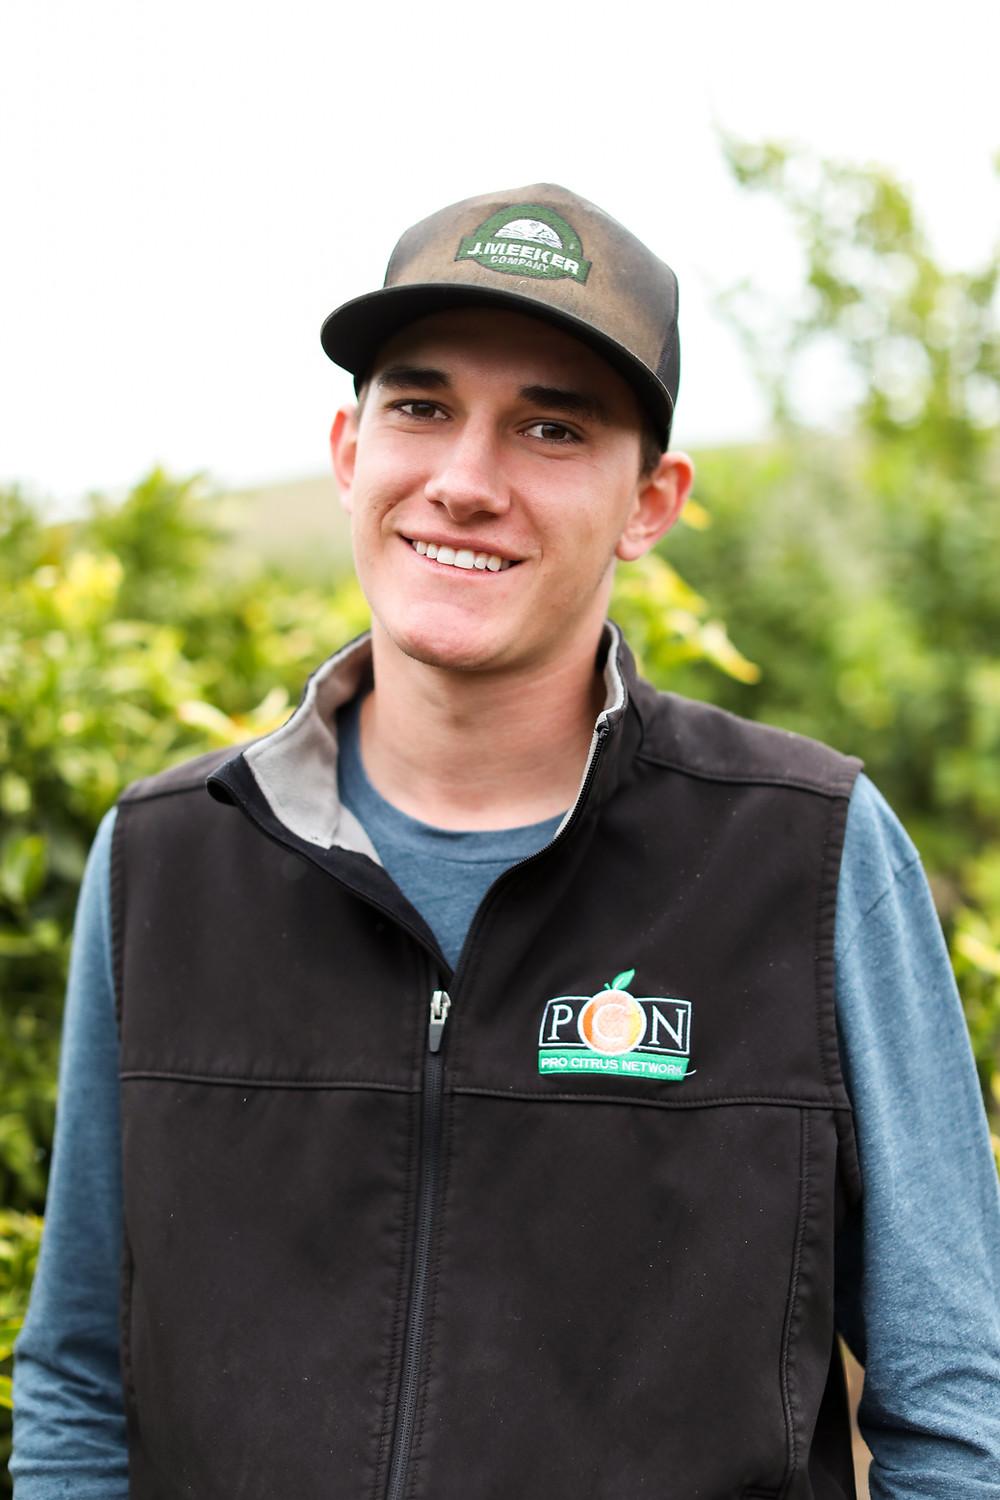 a photo of Trent the farmer feature